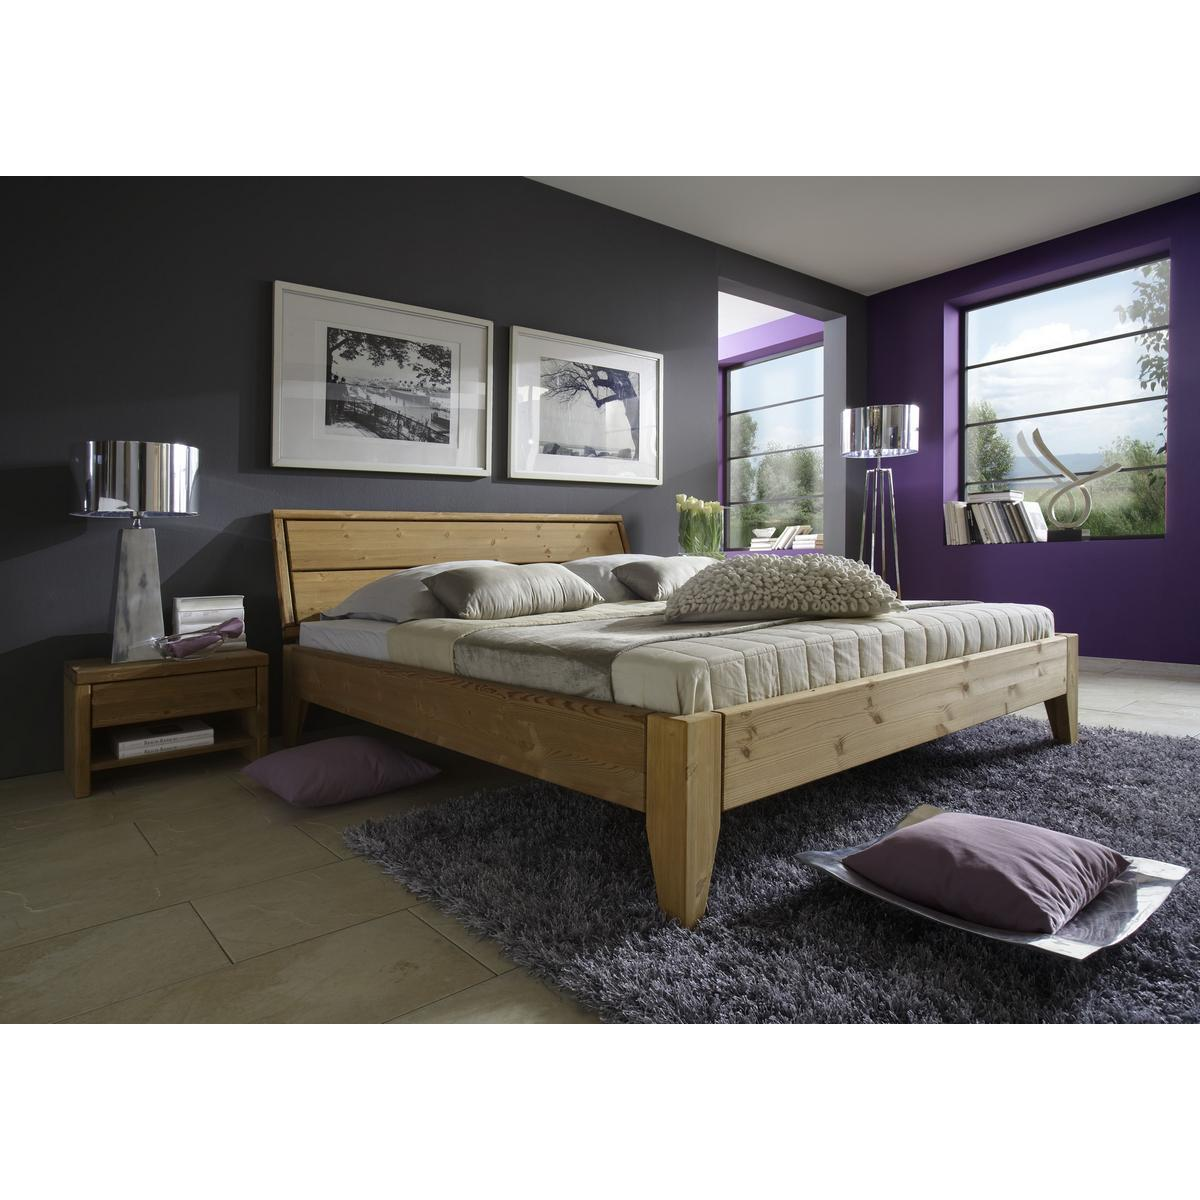 massivholz bett 200x200 easy sleep kiefer massiv gelaugt ge lt 9420 92 5. Black Bedroom Furniture Sets. Home Design Ideas